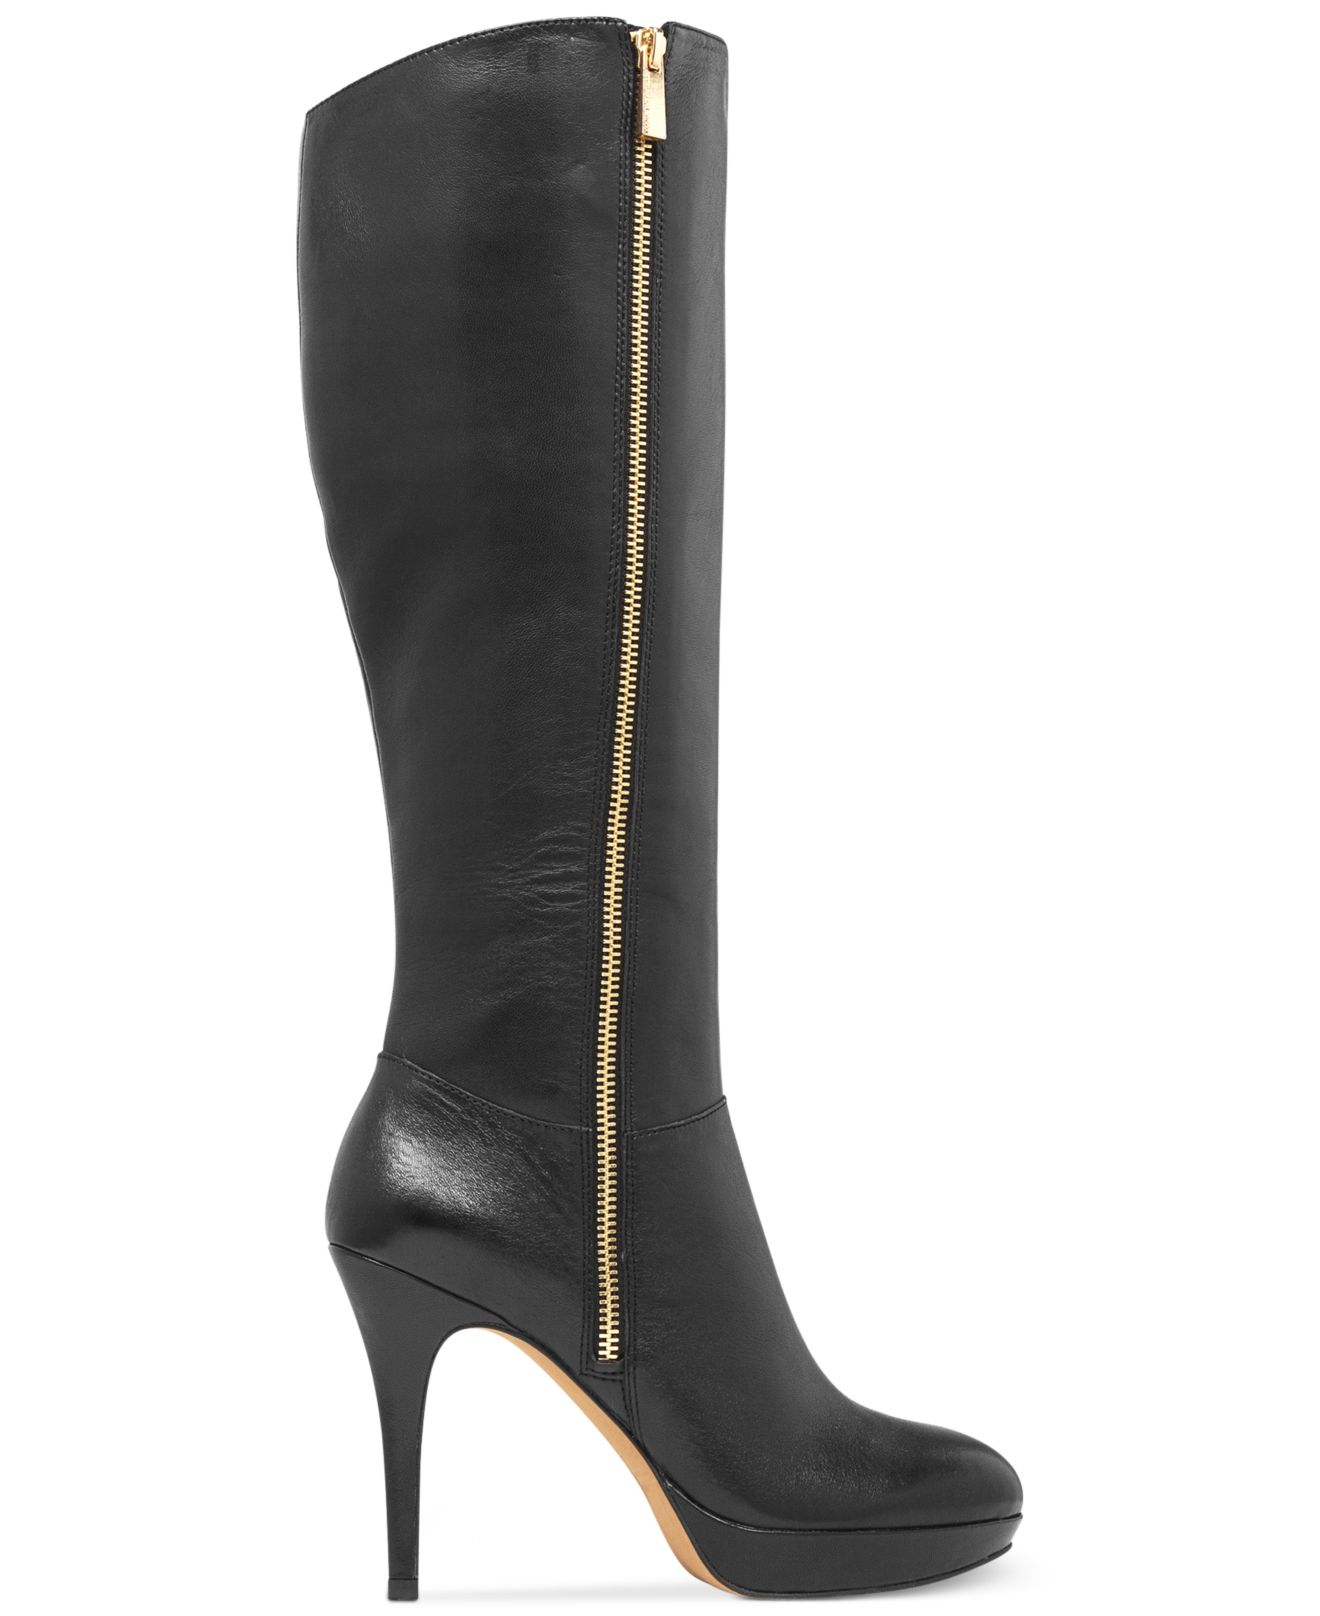 4442c5e9ead Lyst vince camuto emilian tall wide calf dress boots in black jpg 1320x1616 Vince  camuto tall